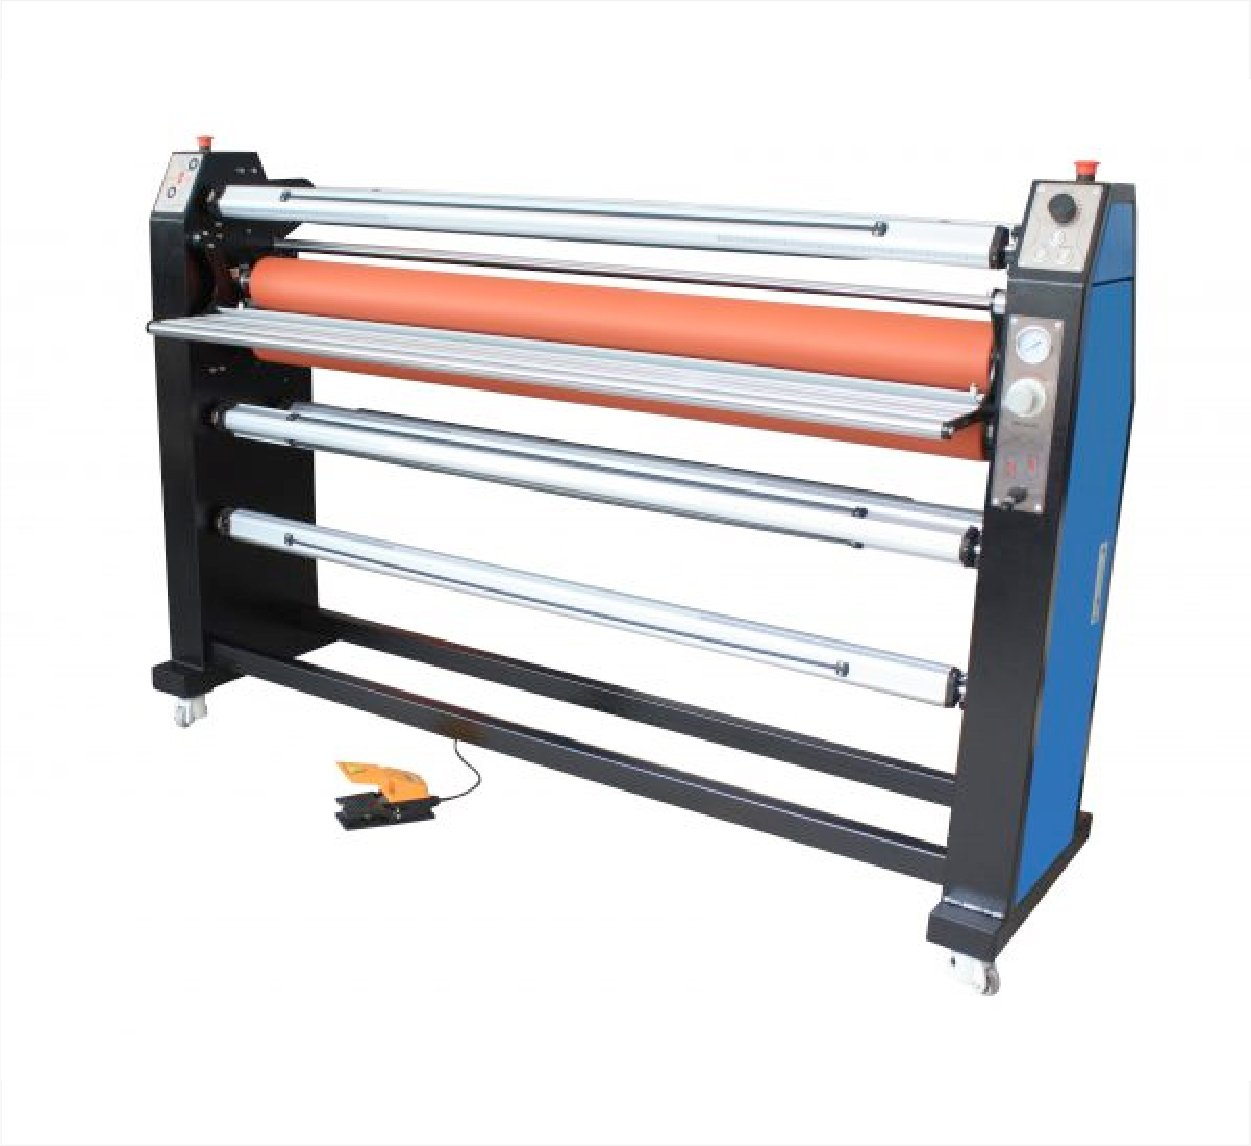 Paramount 65X 65in Pneumatic Laminator With Heat Assist